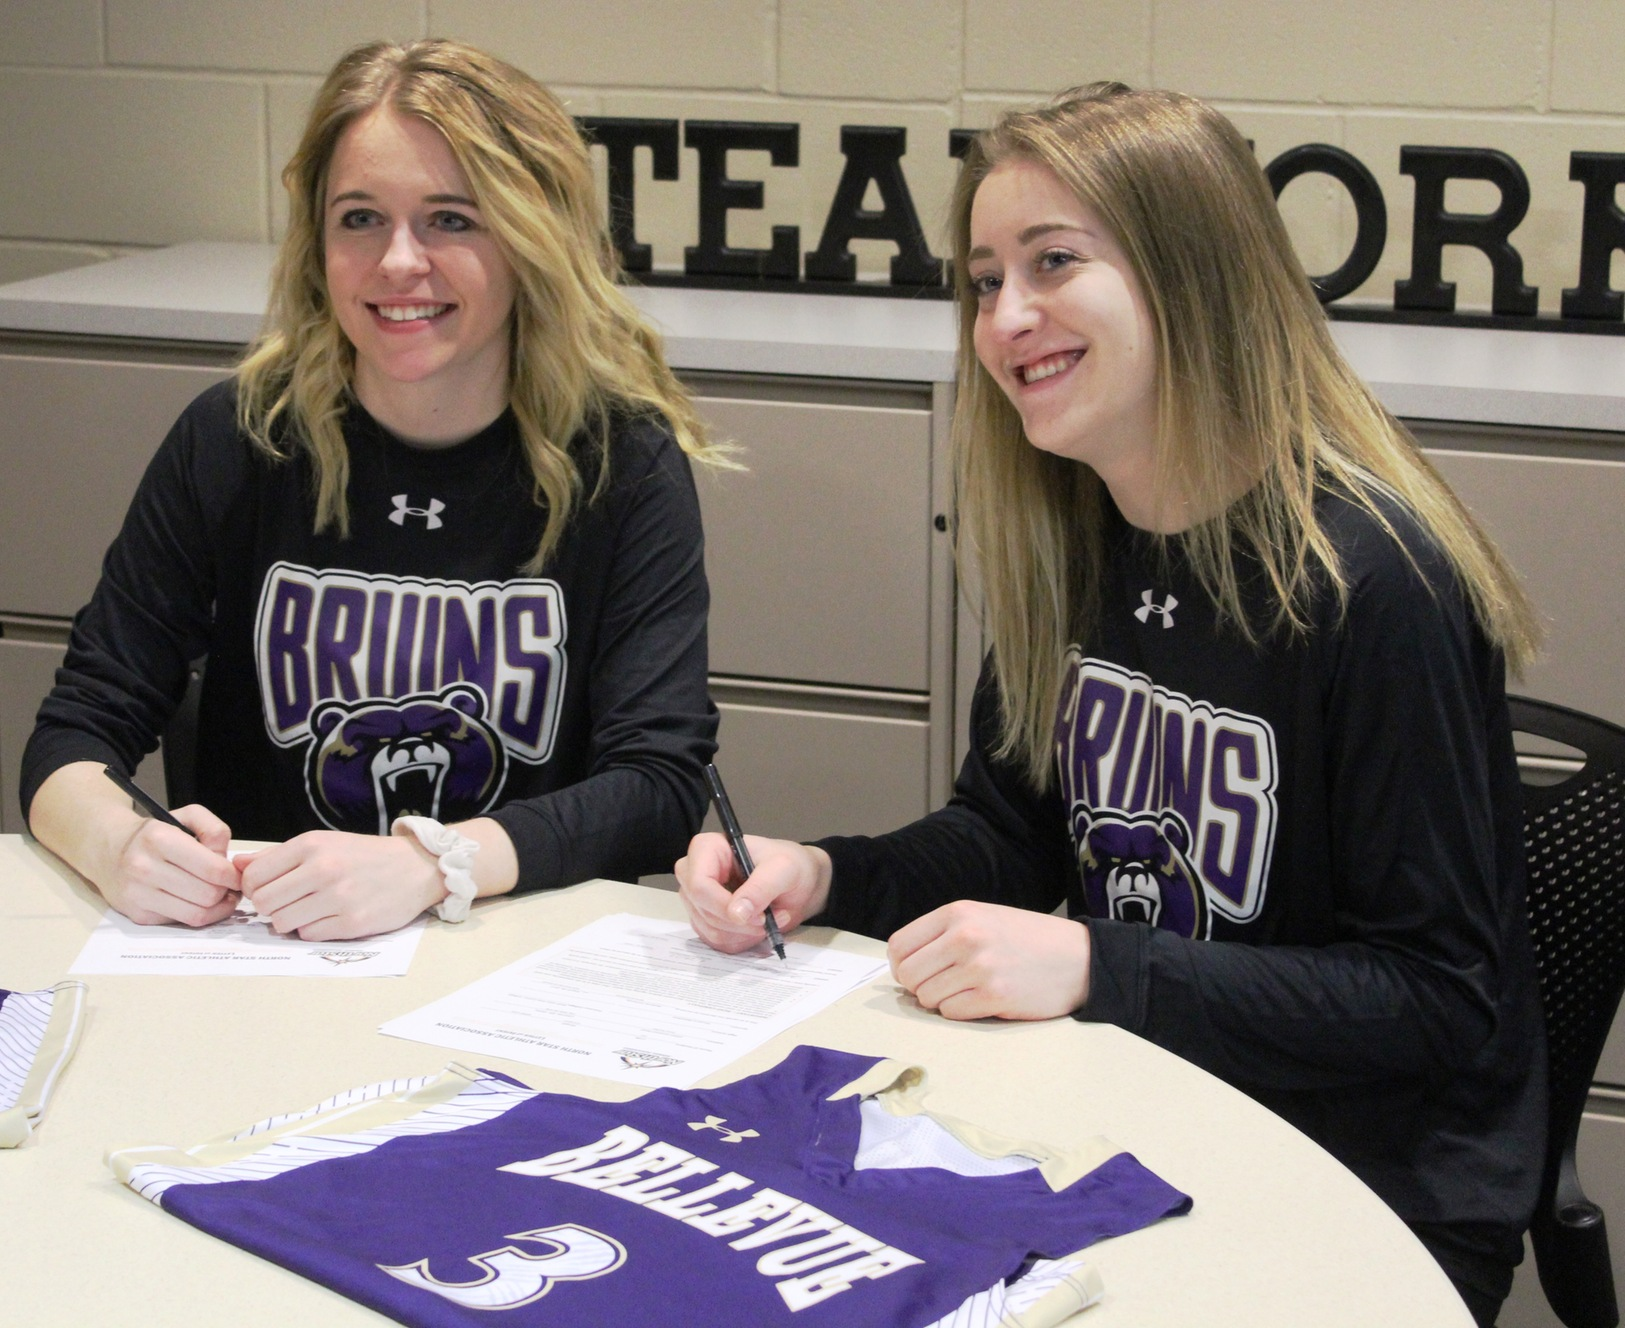 Riley Galvin (left) and Morgan Cuffe signed to play basketball next season at Bellevue University.